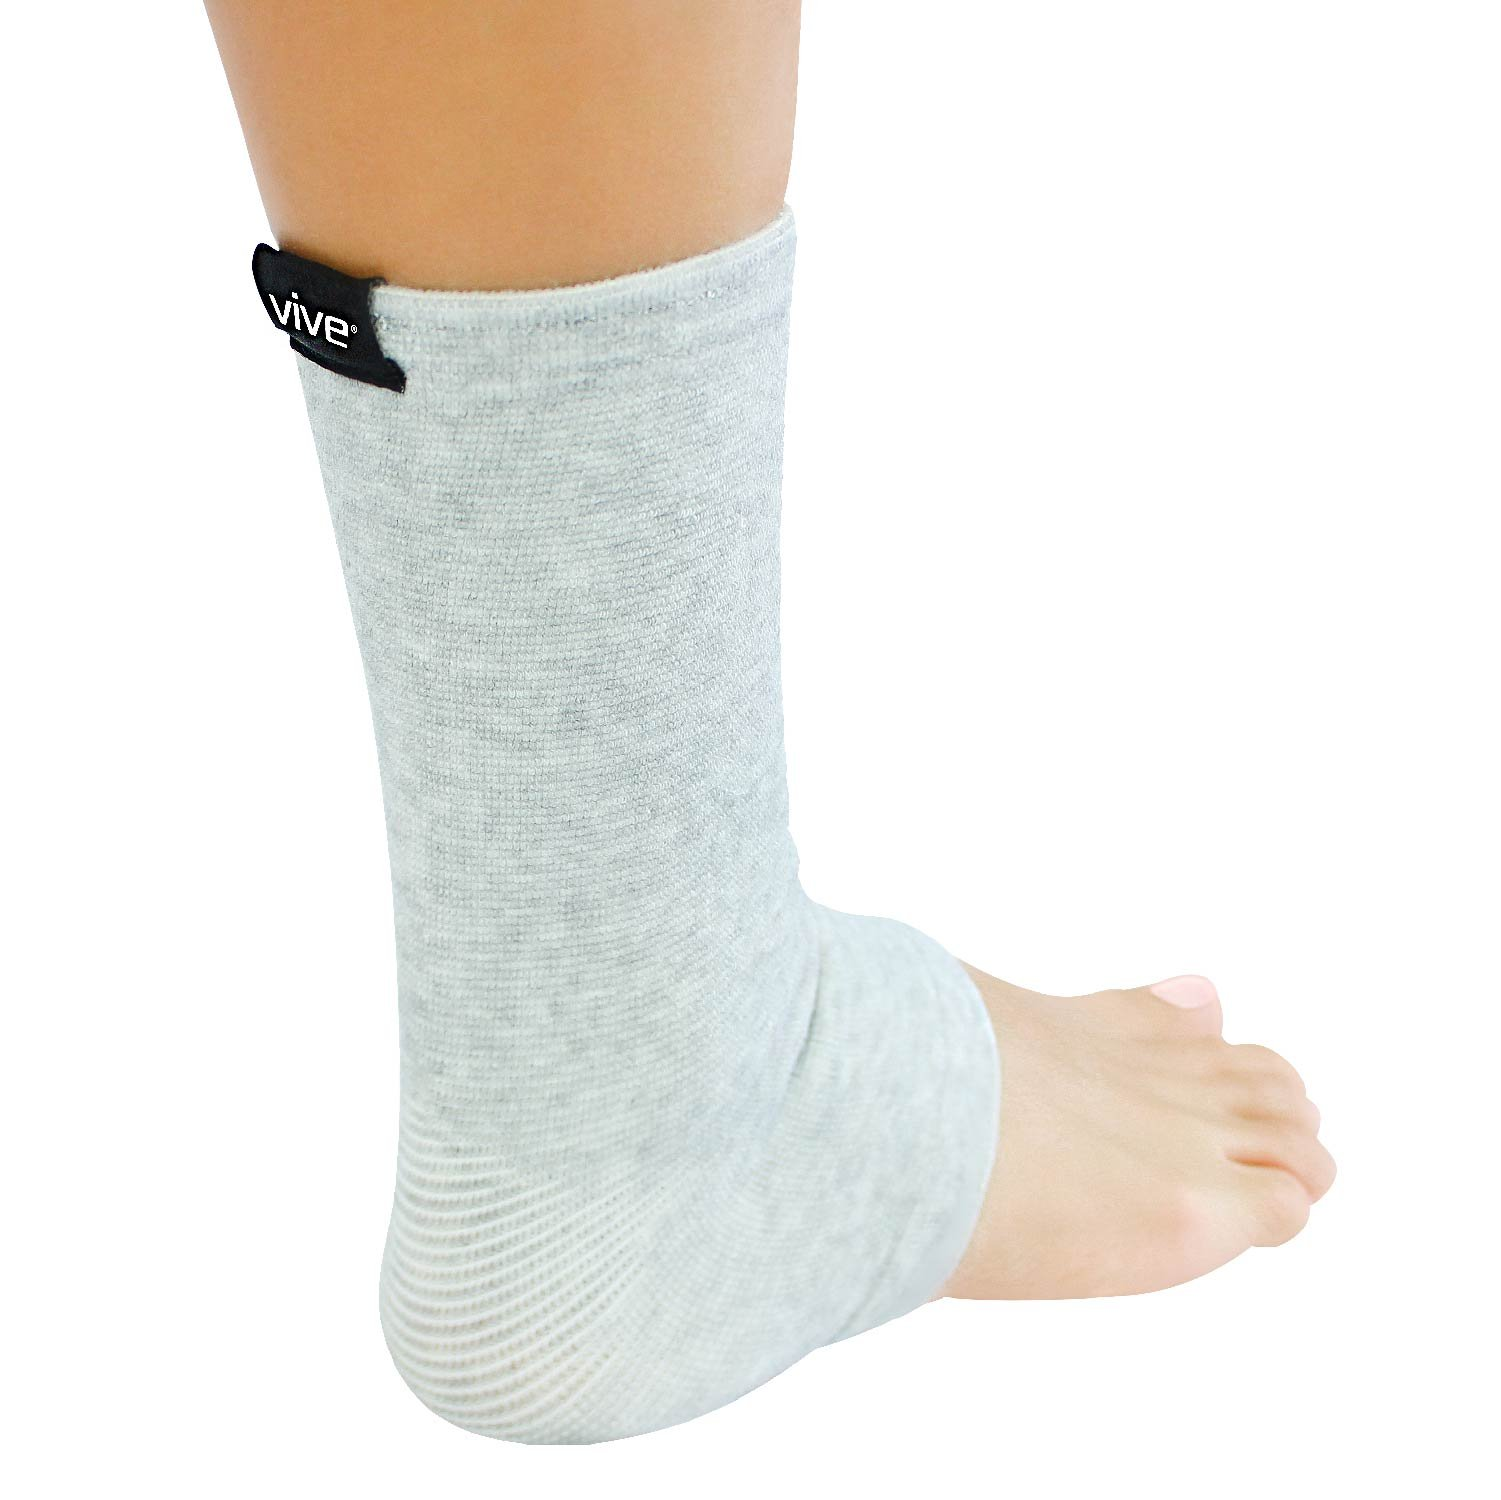 Ankle Sleeve by Vive - Bamboo Charcoal Compression Ankle Support for Running, Soccer, Basketball, Football, Arthritis, Sprains and Strains for Men and Woman (Gray, Small/Medium)